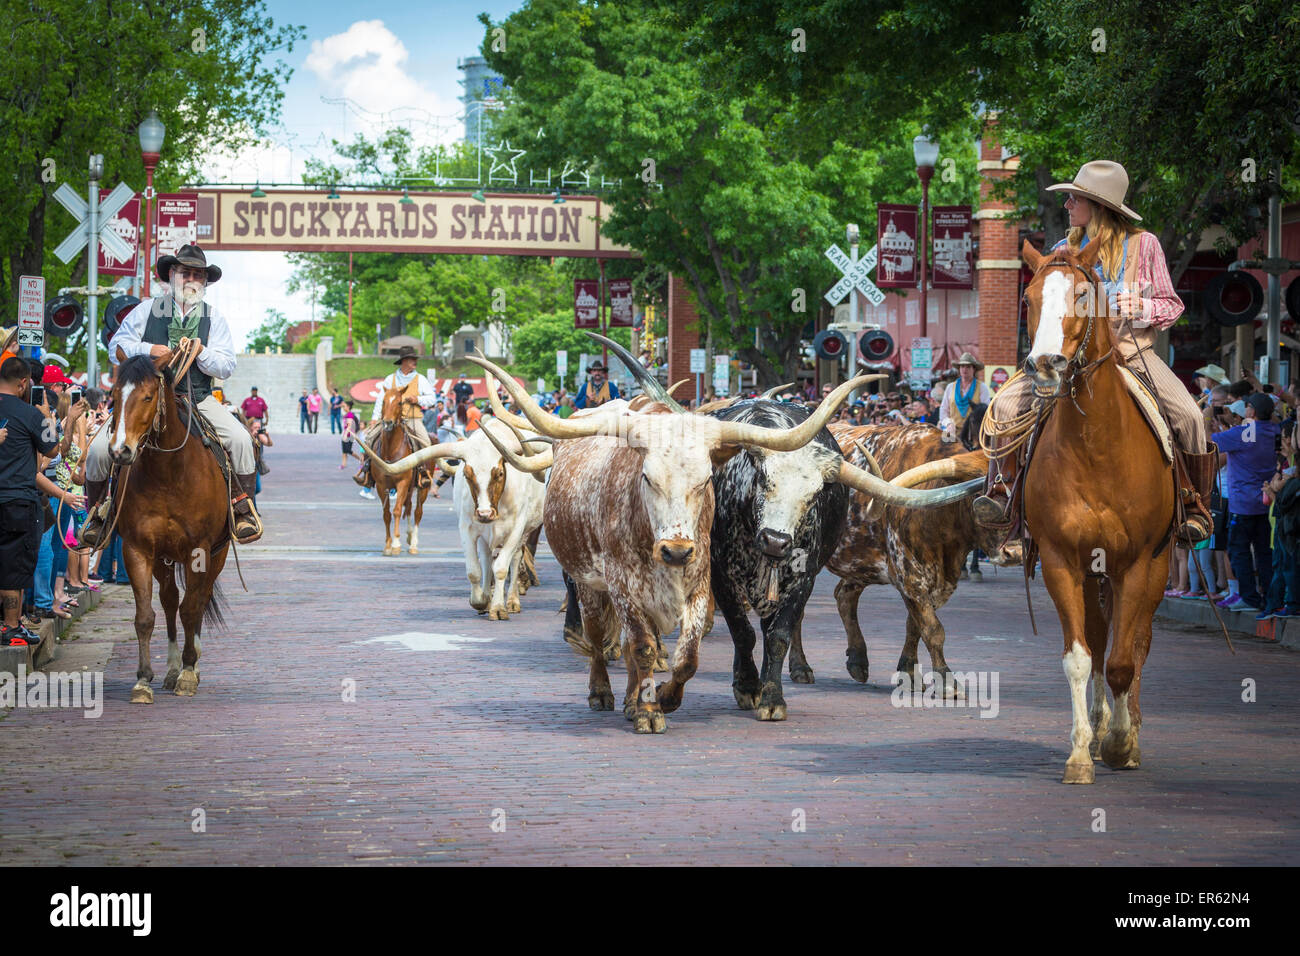 Cattle Drive Texas Longhorn Cattle With Cowboys And Cowgirl Stock Photo Alamy